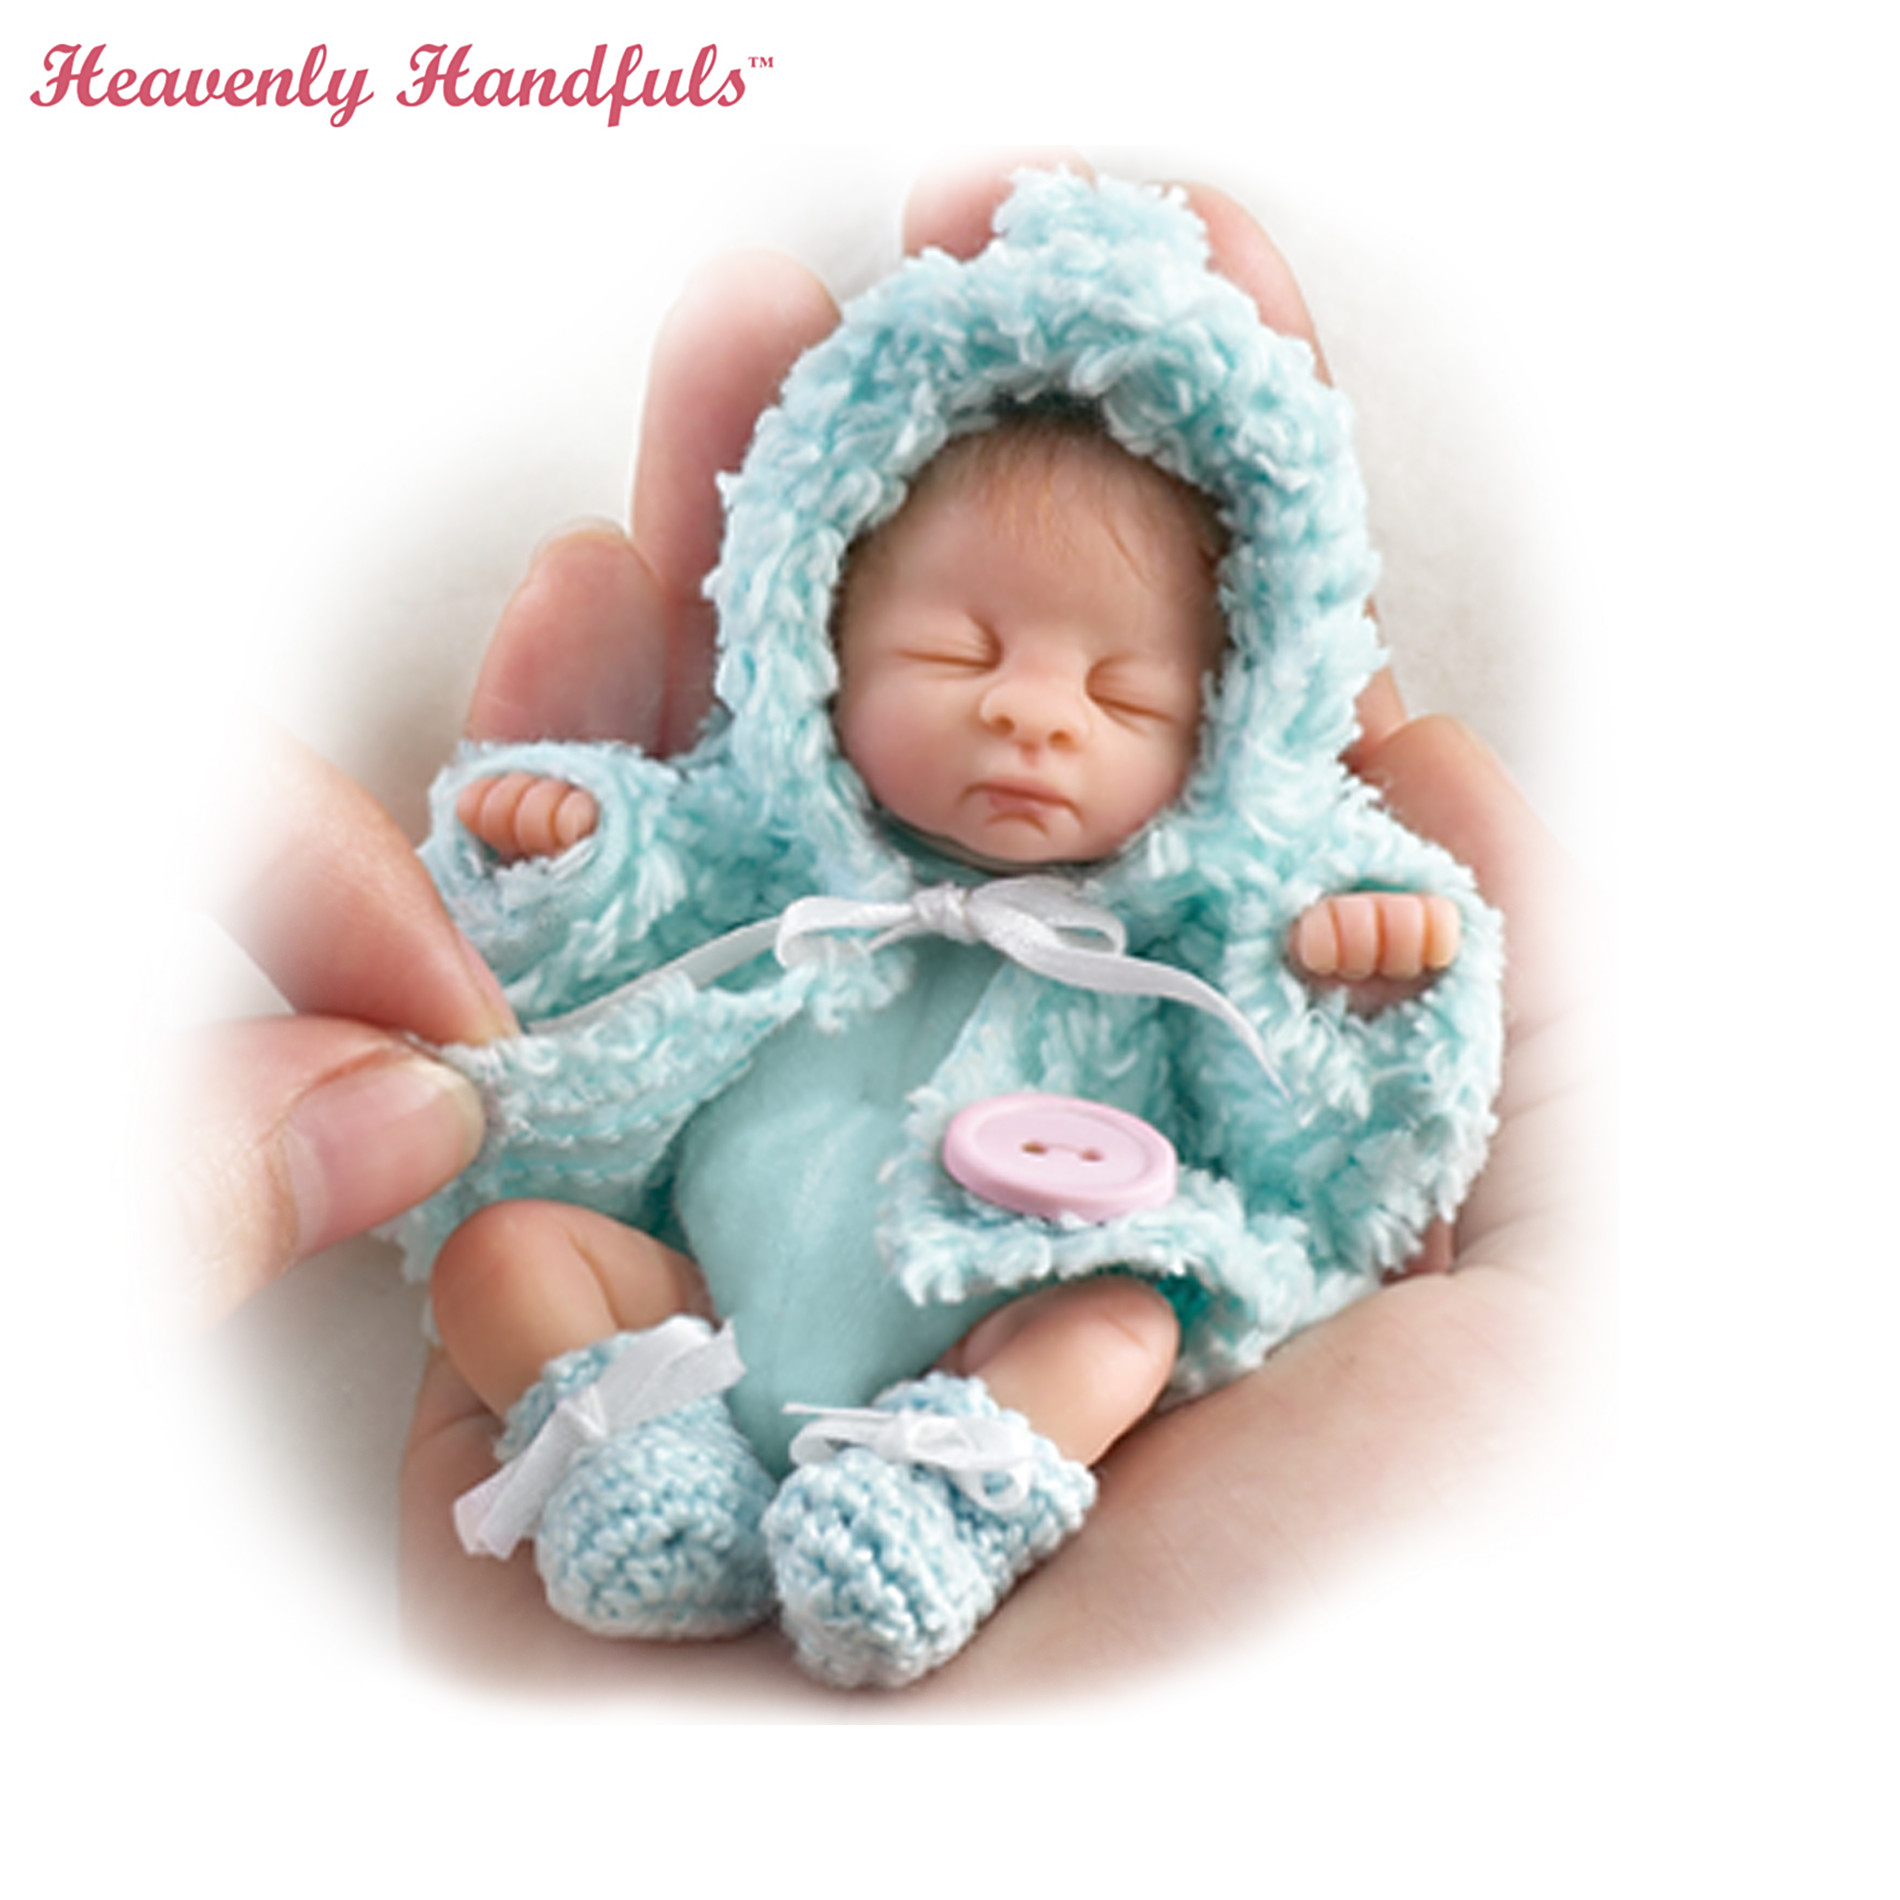 The Ashton-Drake Galleries Poseable Miniature Baby Doll Collection: Heavenly Handfuls Sweet As You Please at Sears.com